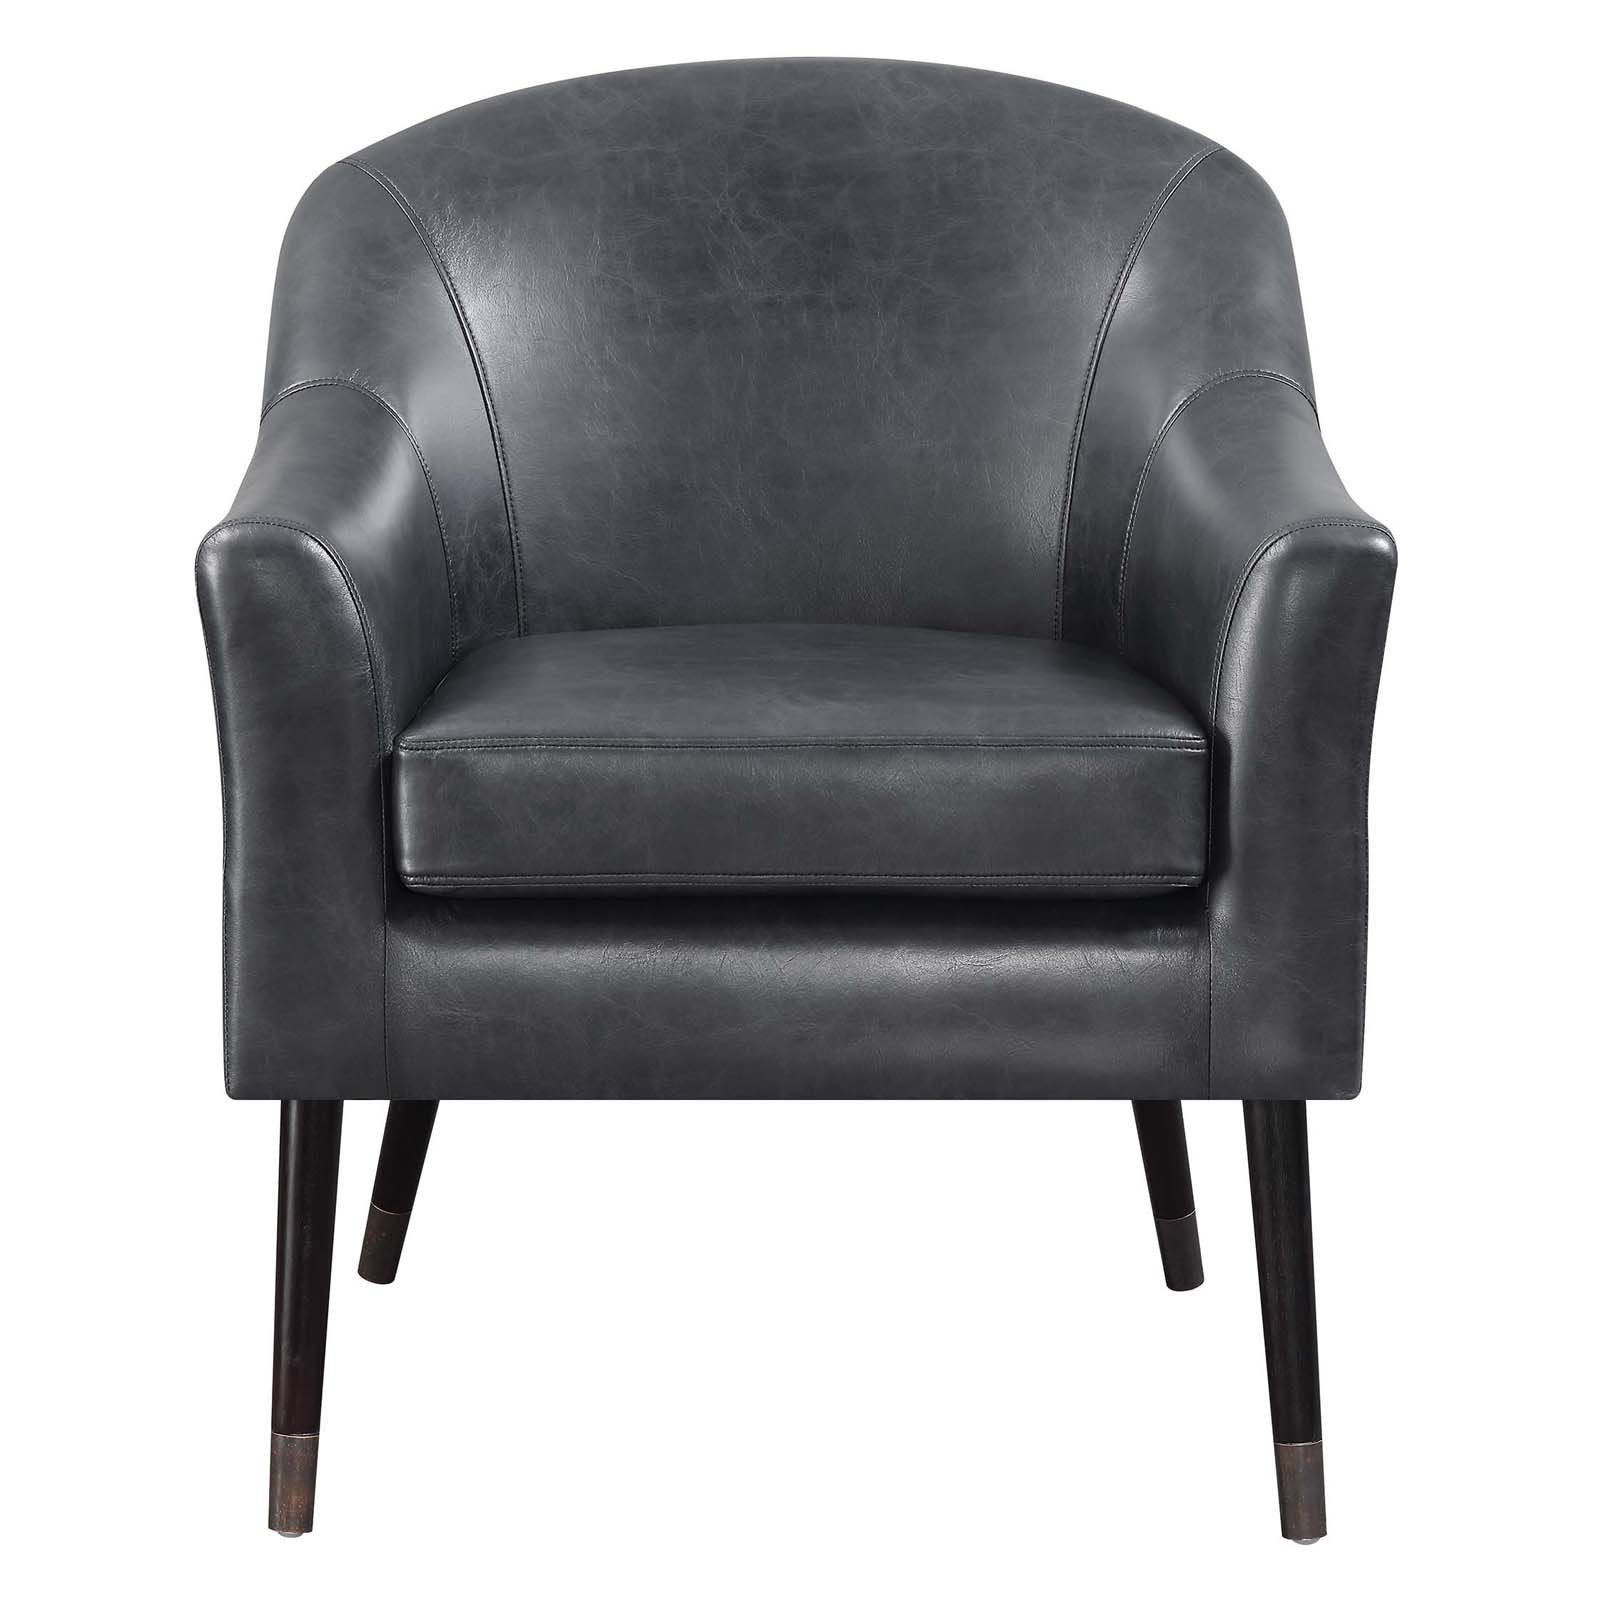 Scott Living Faux Leather Accent Chair | From Hayneedle Within Jill Faux Leather Armchairs (View 15 of 15)